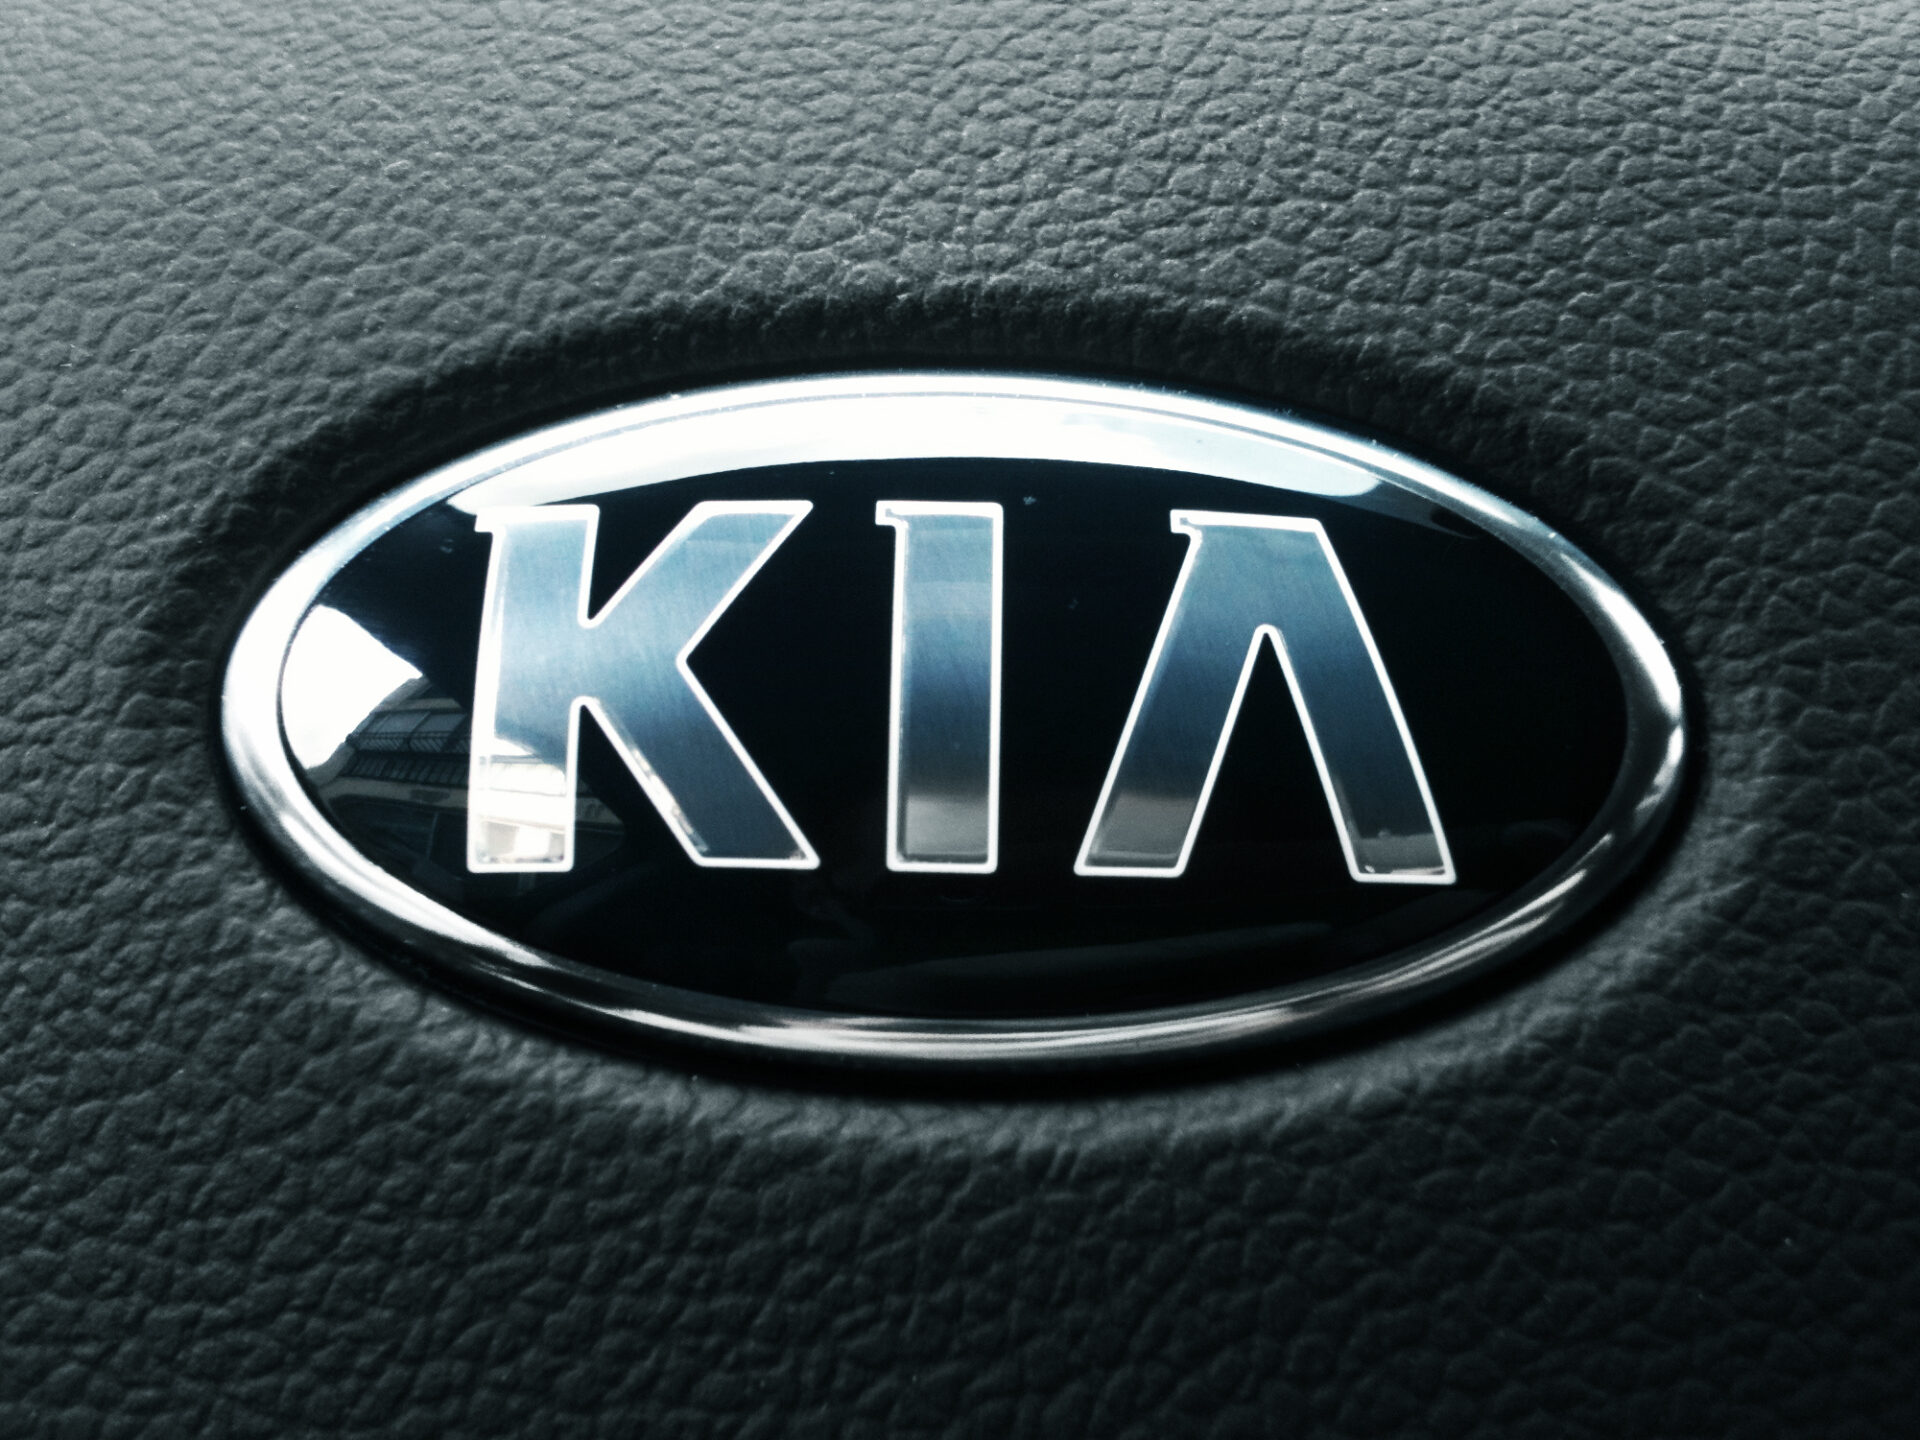 Kia recall accident crash personal injury